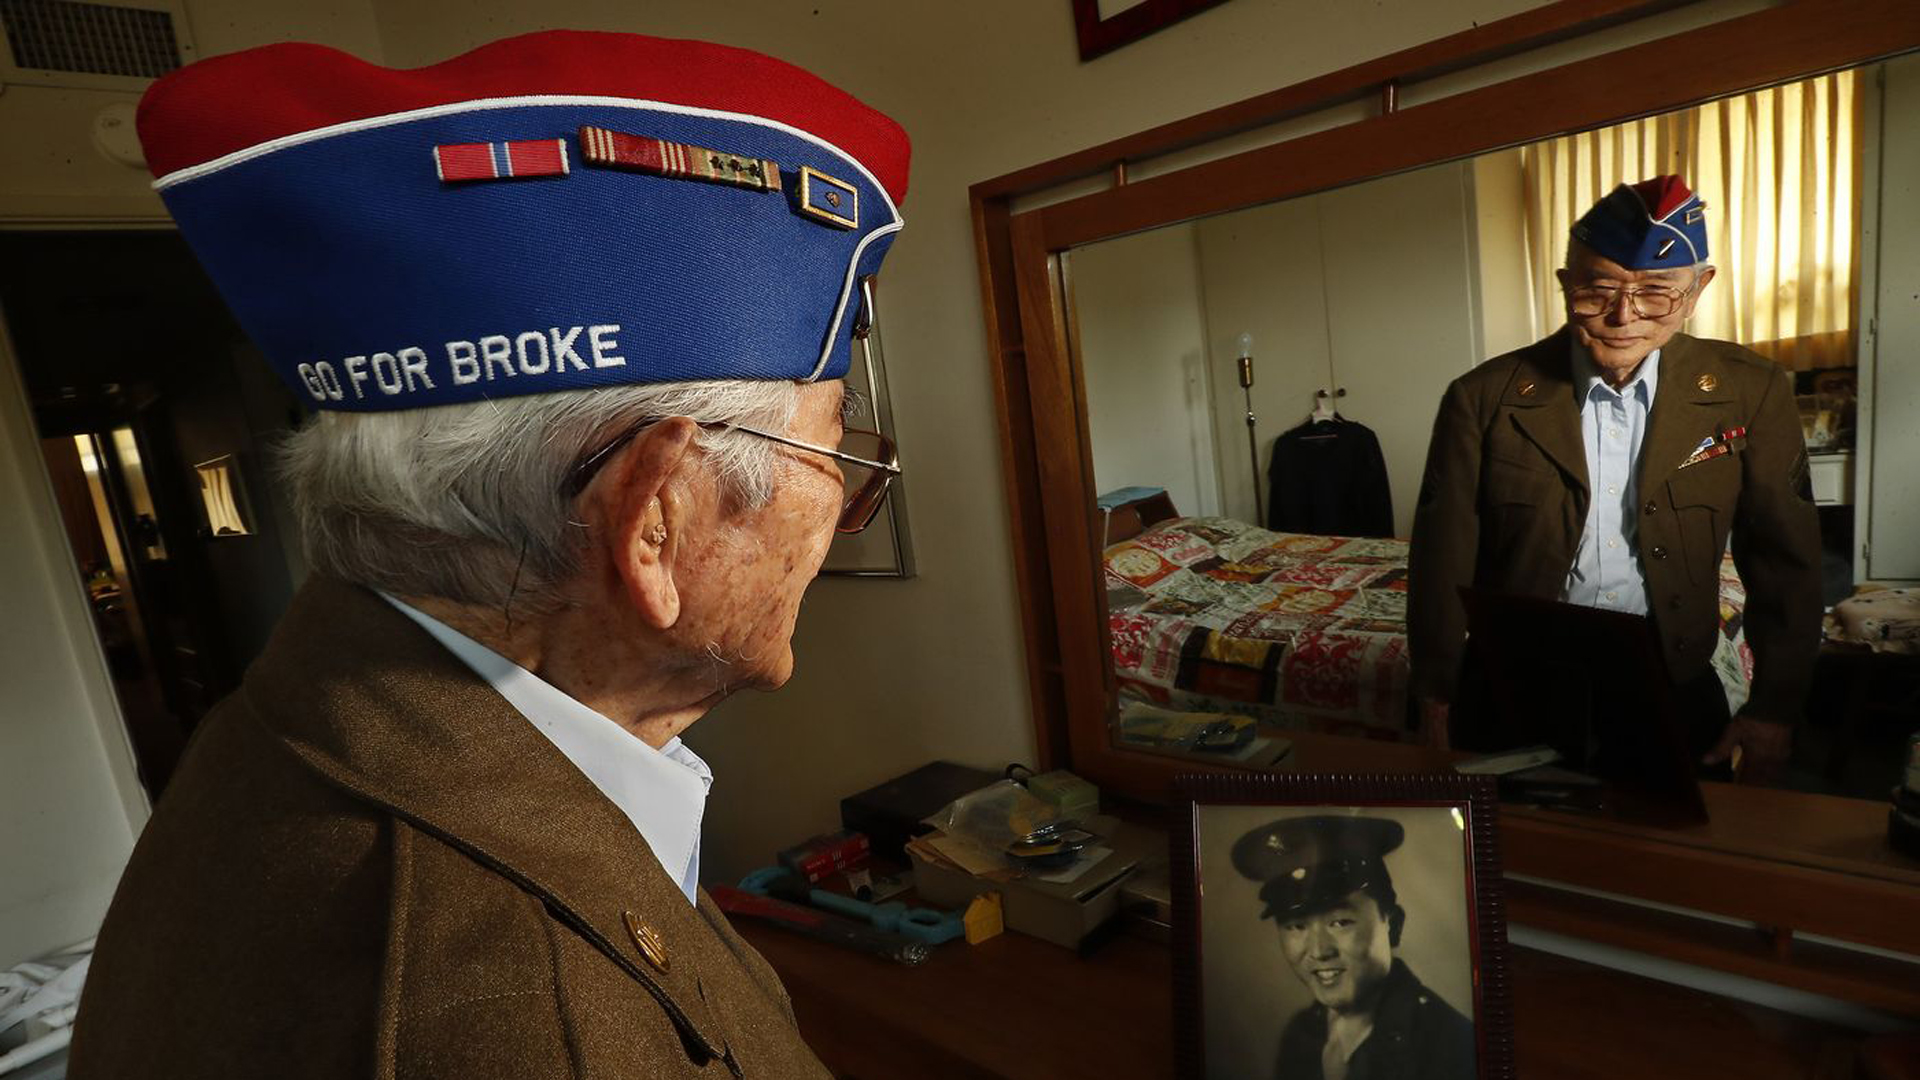 Yoshio Nakamura, 93, survived Nazi artillery in Italy, upon returning from WW II he found his house was gone. (Credit: Mel Melcon / Los Angeles Times)